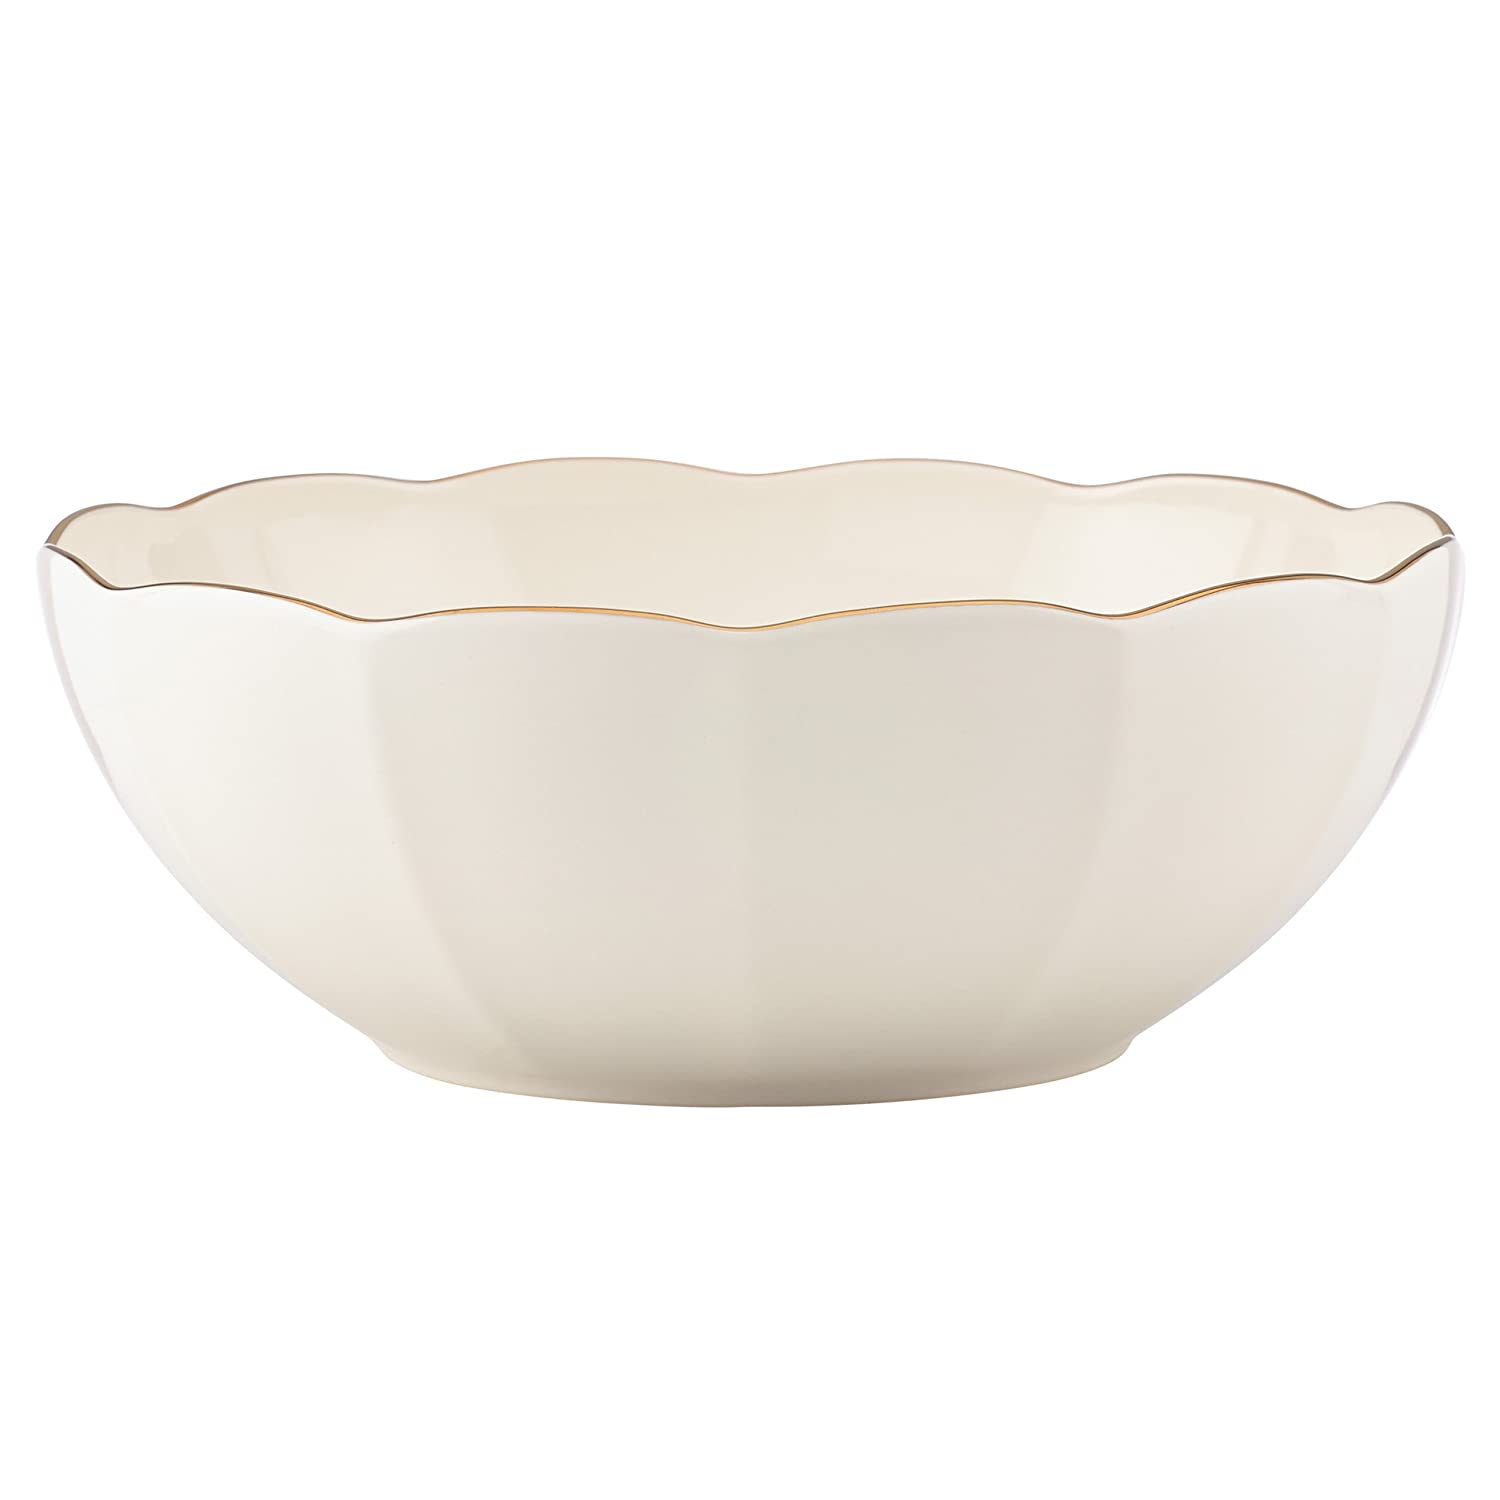 f02ad57fa1 Amazon.com: Marchesa Shades of White Serving Bowl by Lenox: Kitchen & Dining